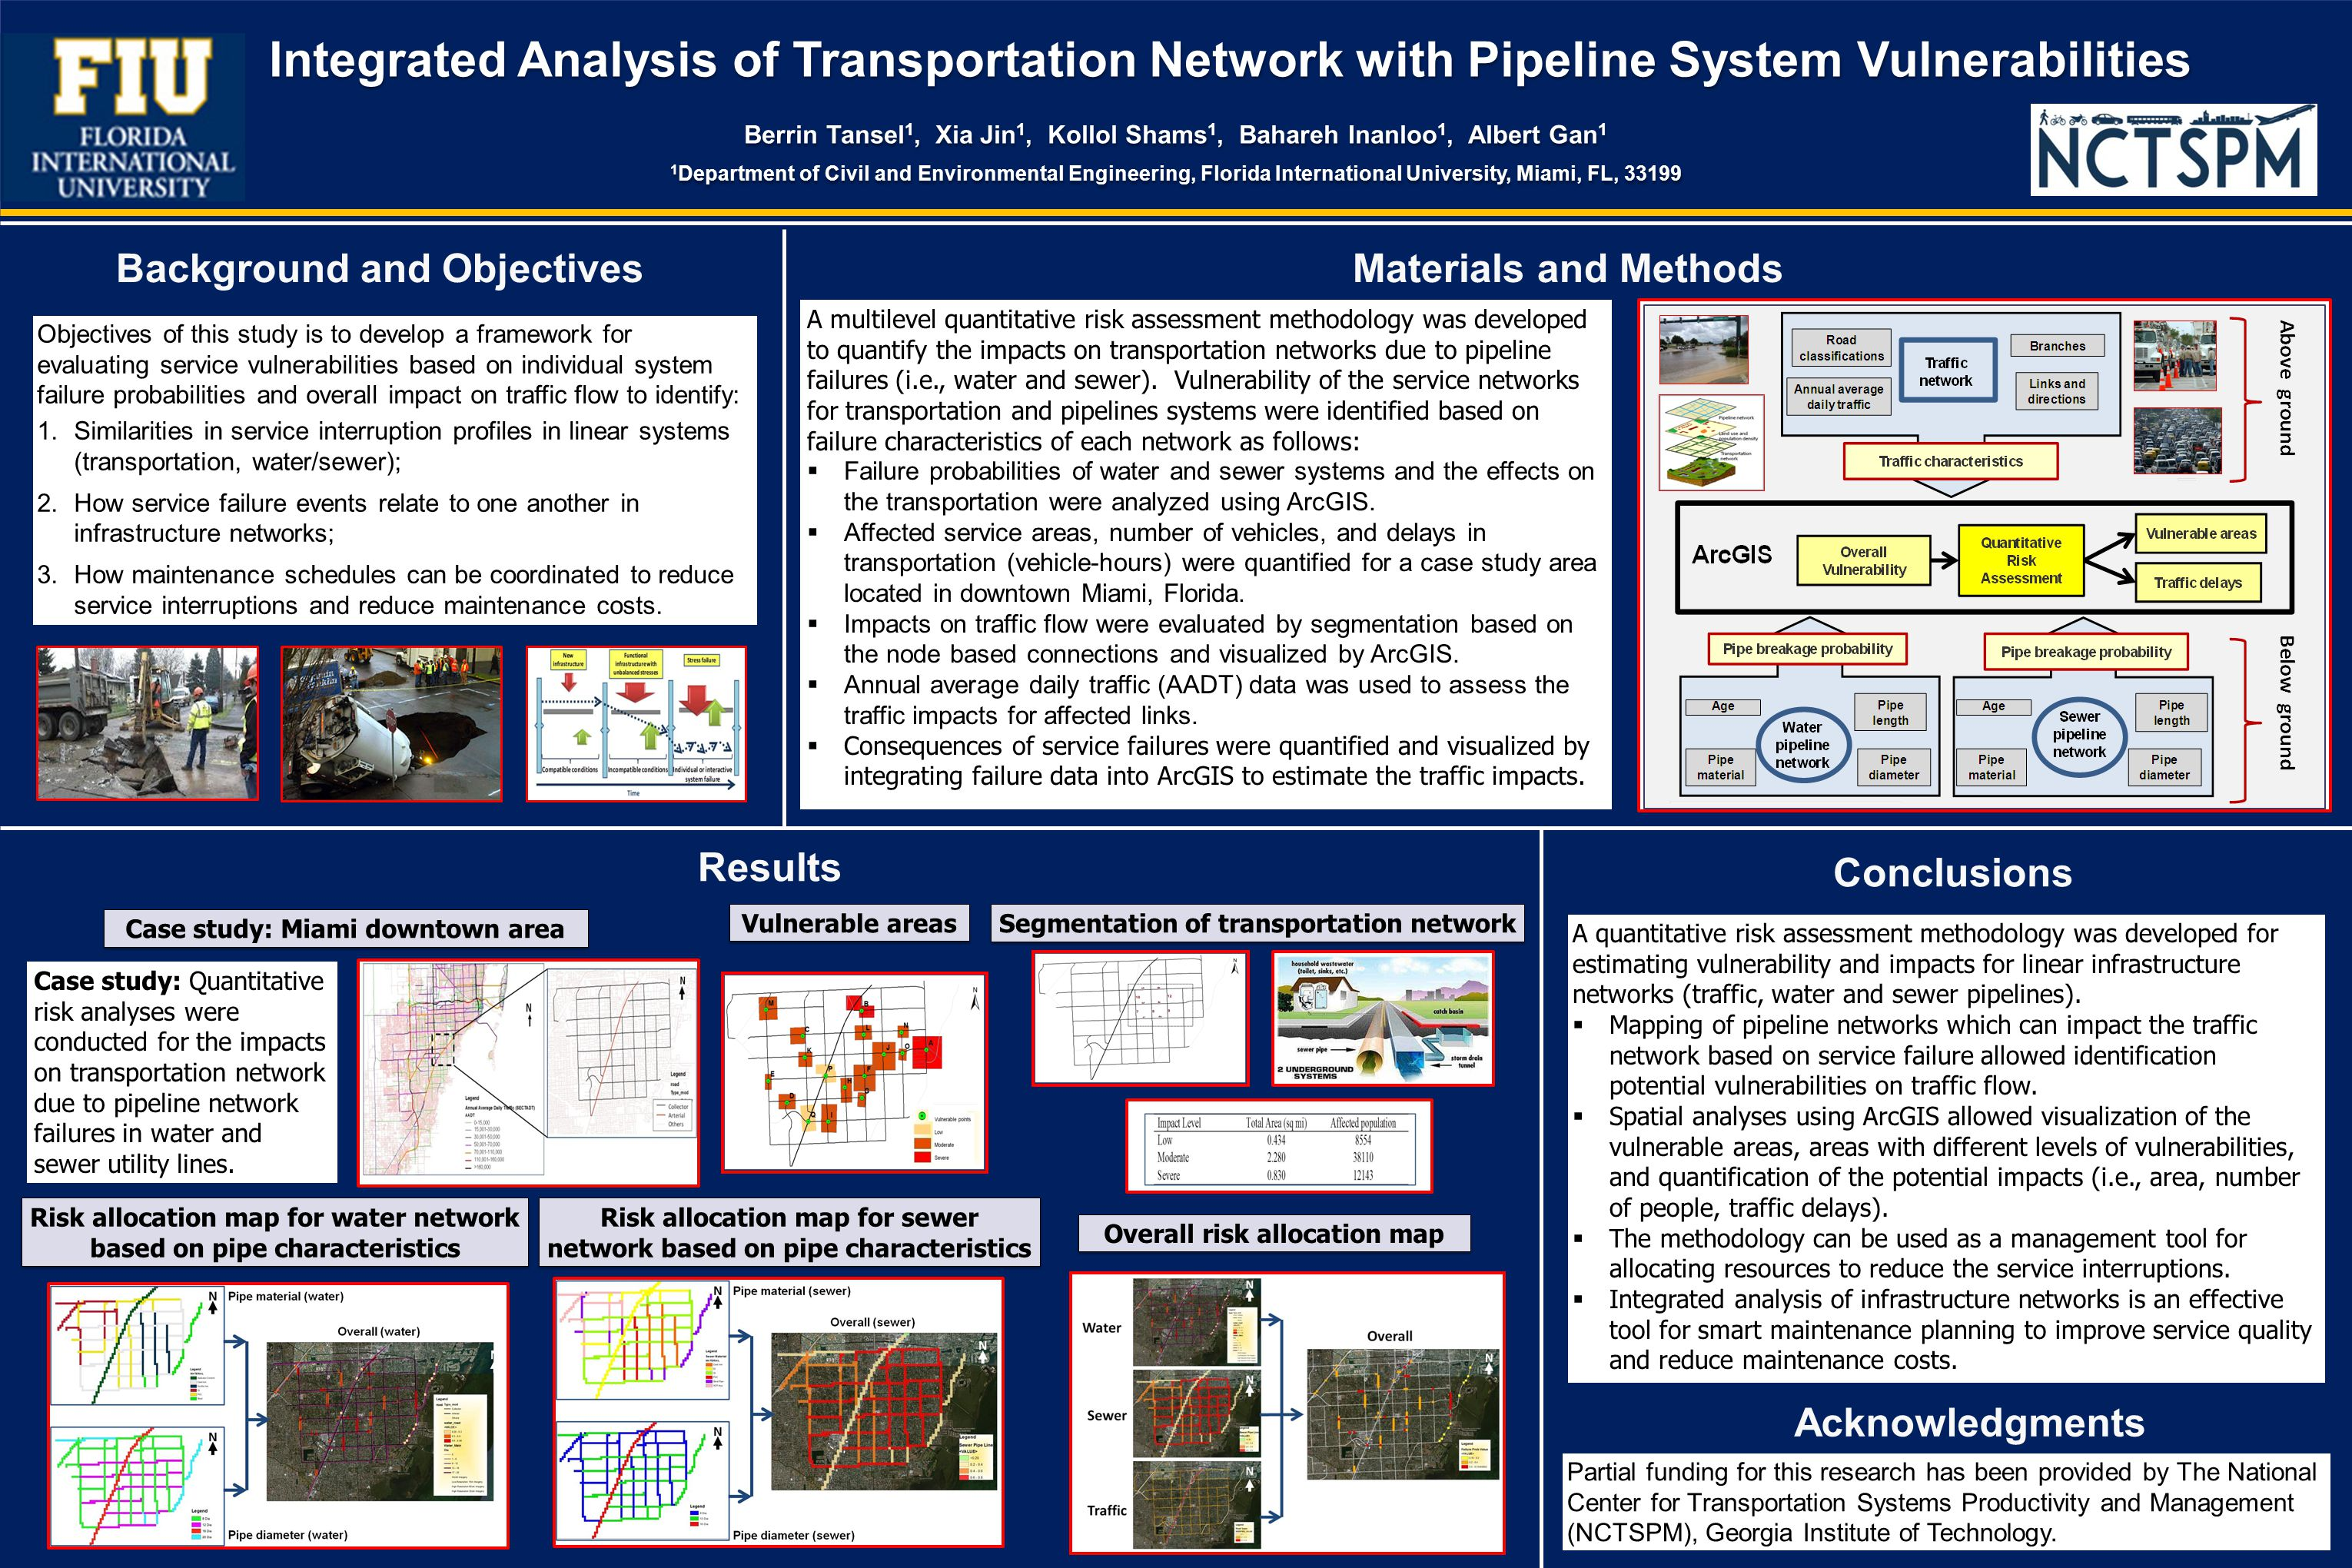 Integrated Analysis of Transportation Network with Pipeline System Vulnerabilities Berrin Tansel 1, Xia Jin 1, Kollol Shams 1, Bahareh Inanloo 1, Albert Gan 1 1 Department of Civil and Environmental Engineering, Florida International University, Miami, FL, 33199 Integrated Analysis of Transportation Network with Pipeline System Vulnerabilities Berrin Tansel 1, Xia Jin 1, Kollol Shams 1, Bahareh Inanloo 1, Albert Gan 1 1 Department of Civil and Environmental Engineering, Florida International University, Miami, FL, 33199 Figure 2 Objectives of this study is to develop a framework for evaluating service vulnerabilities based on individual system failure probabilities and overall impact on traffic flow to identify: 1.Similarities in service interruption profiles in linear systems (transportation, water/sewer); 2.How service failure events relate to one another in infrastructure networks; 3.How maintenance schedules can be coordinated to reduce service interruptions and reduce maintenance costs.